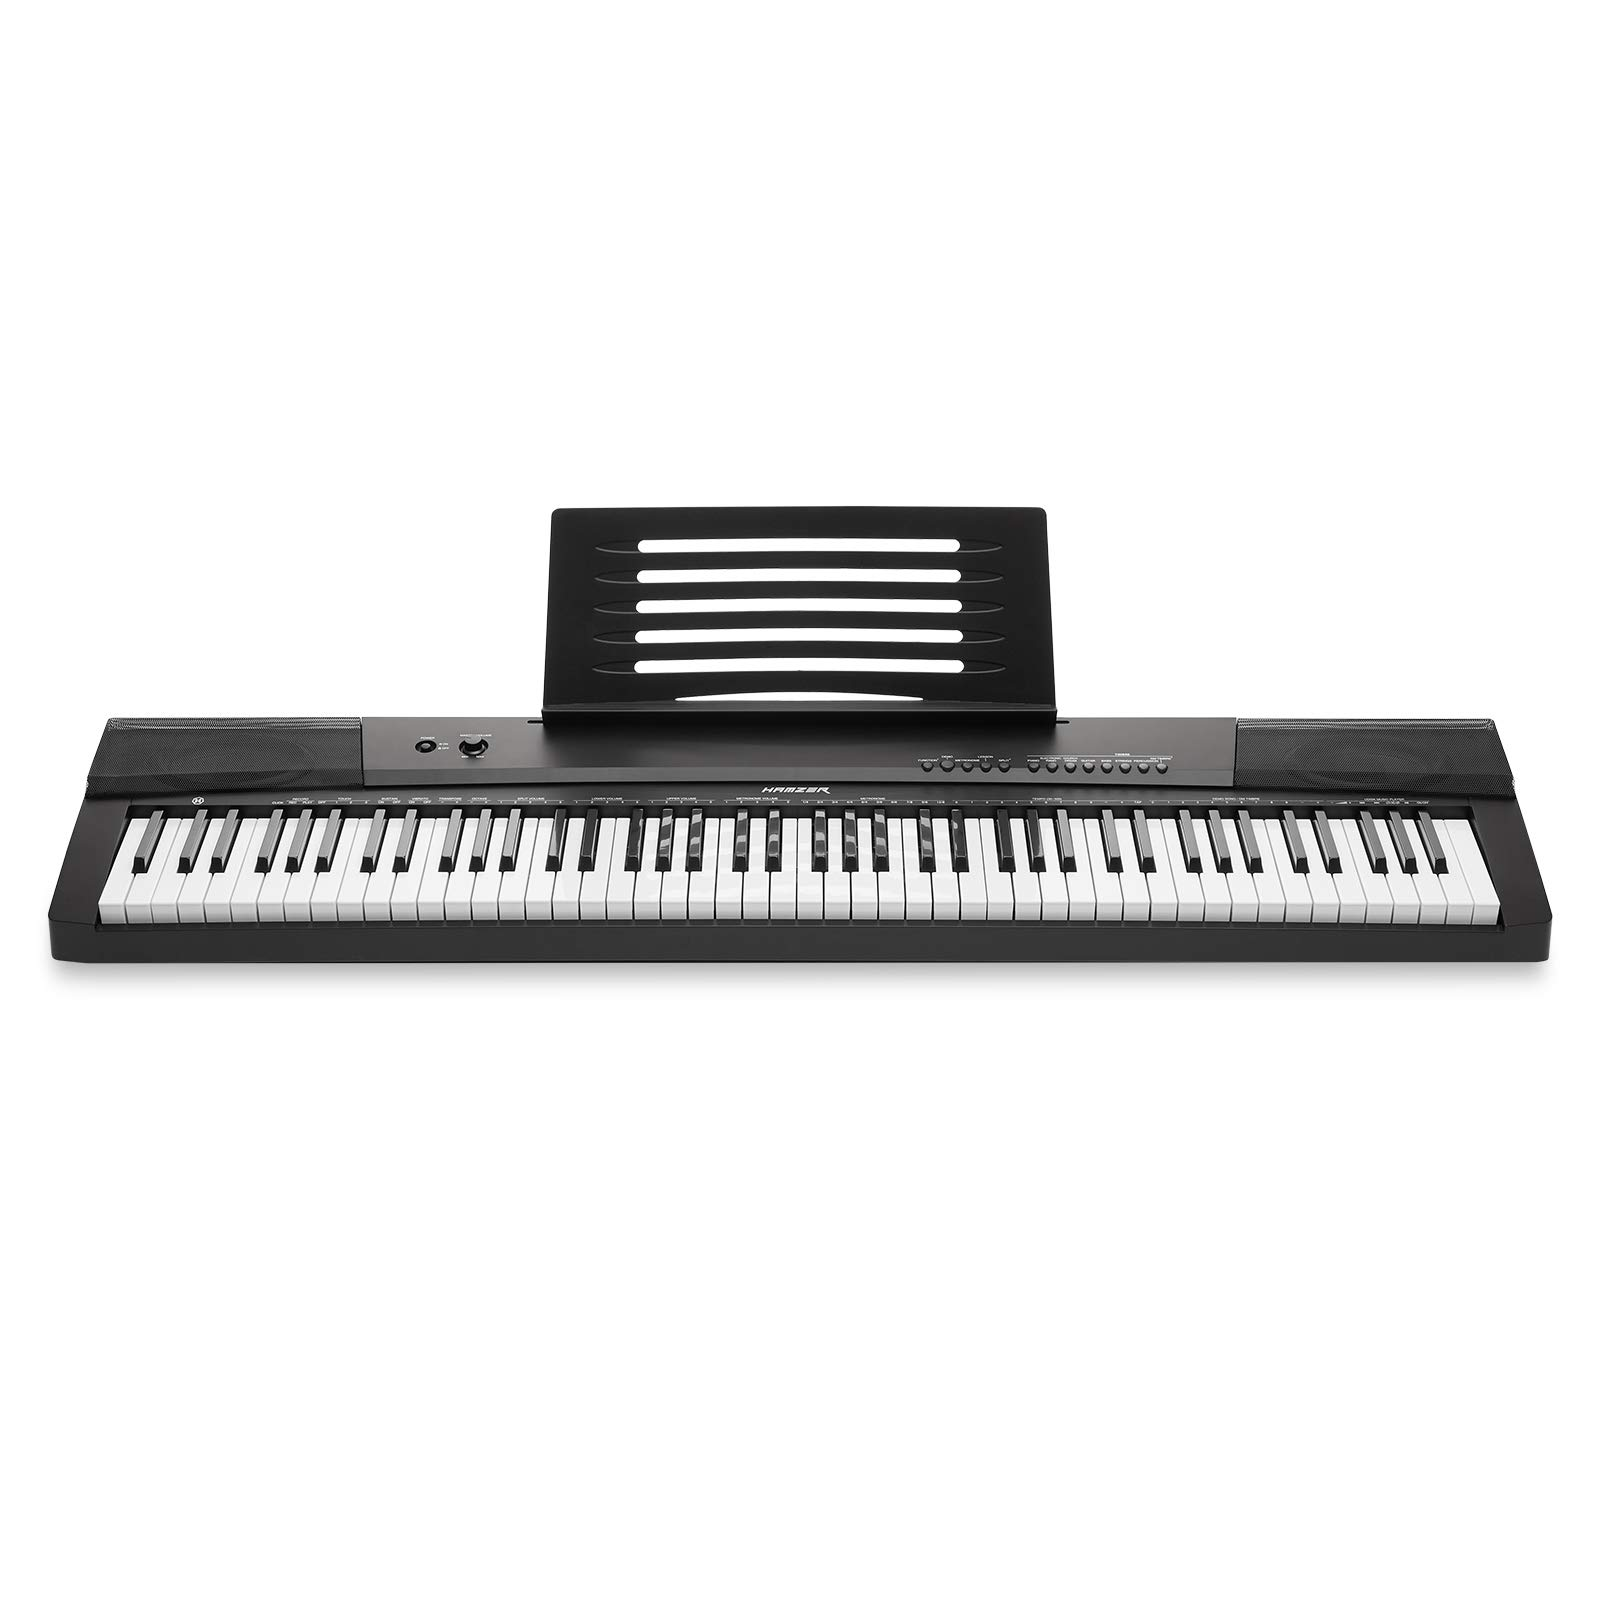 Hamzer 88-Key Electronic Keyboard Portable Digital Music Piano with Touch Sensitive Keys by Hamzer (Image #2)